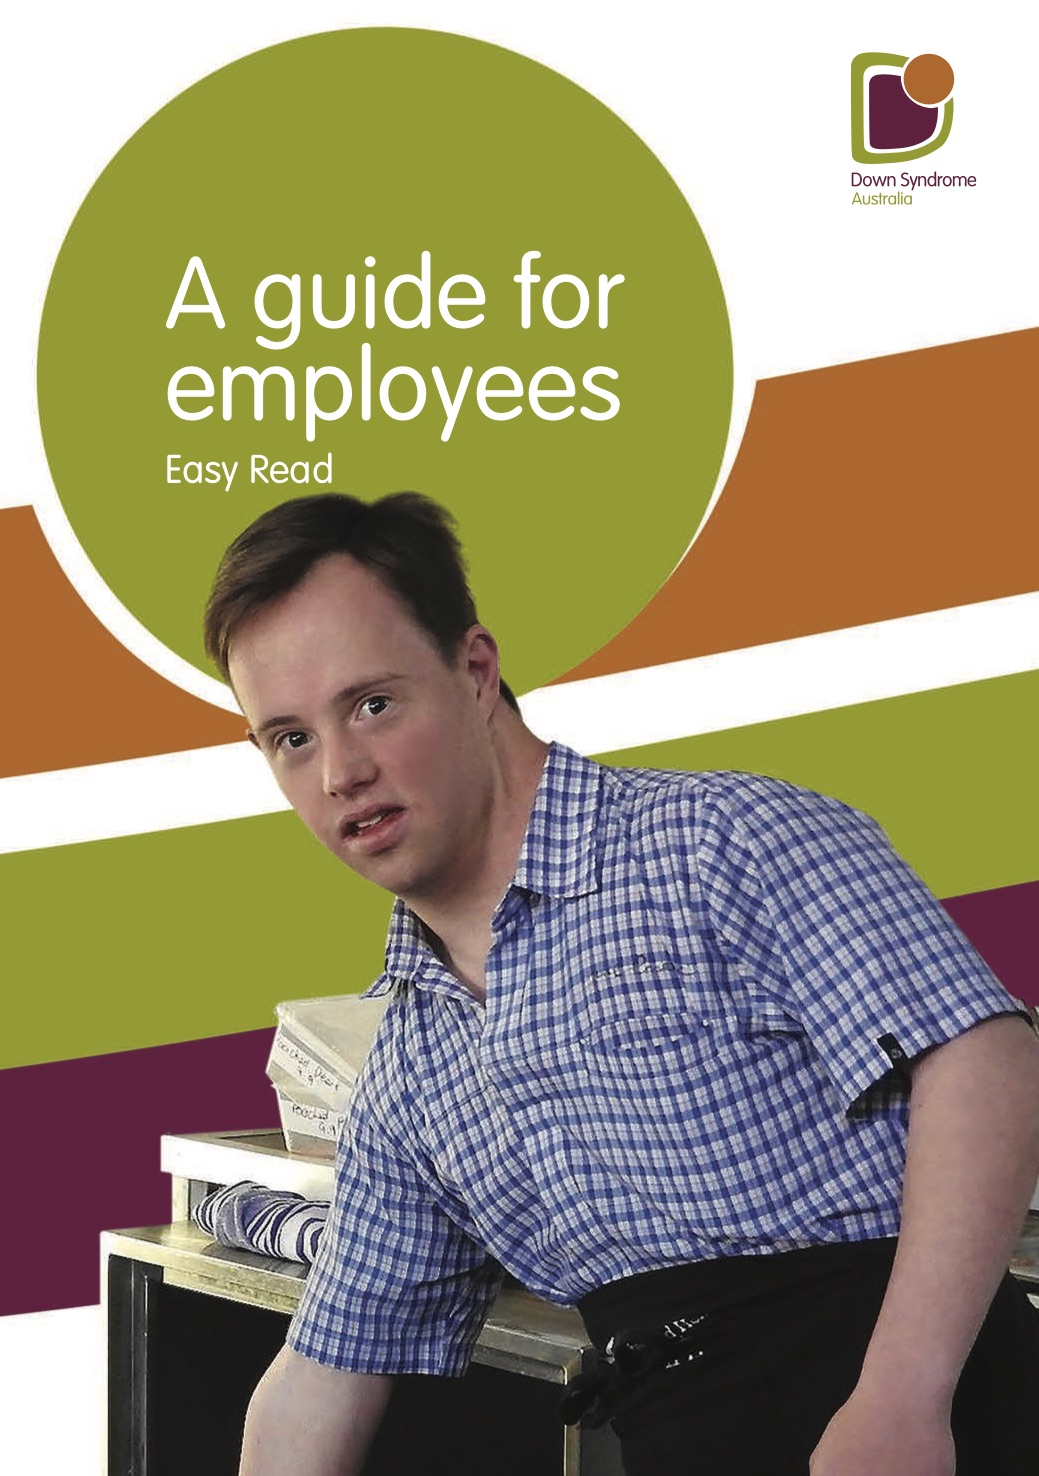 A guide for employees easy read